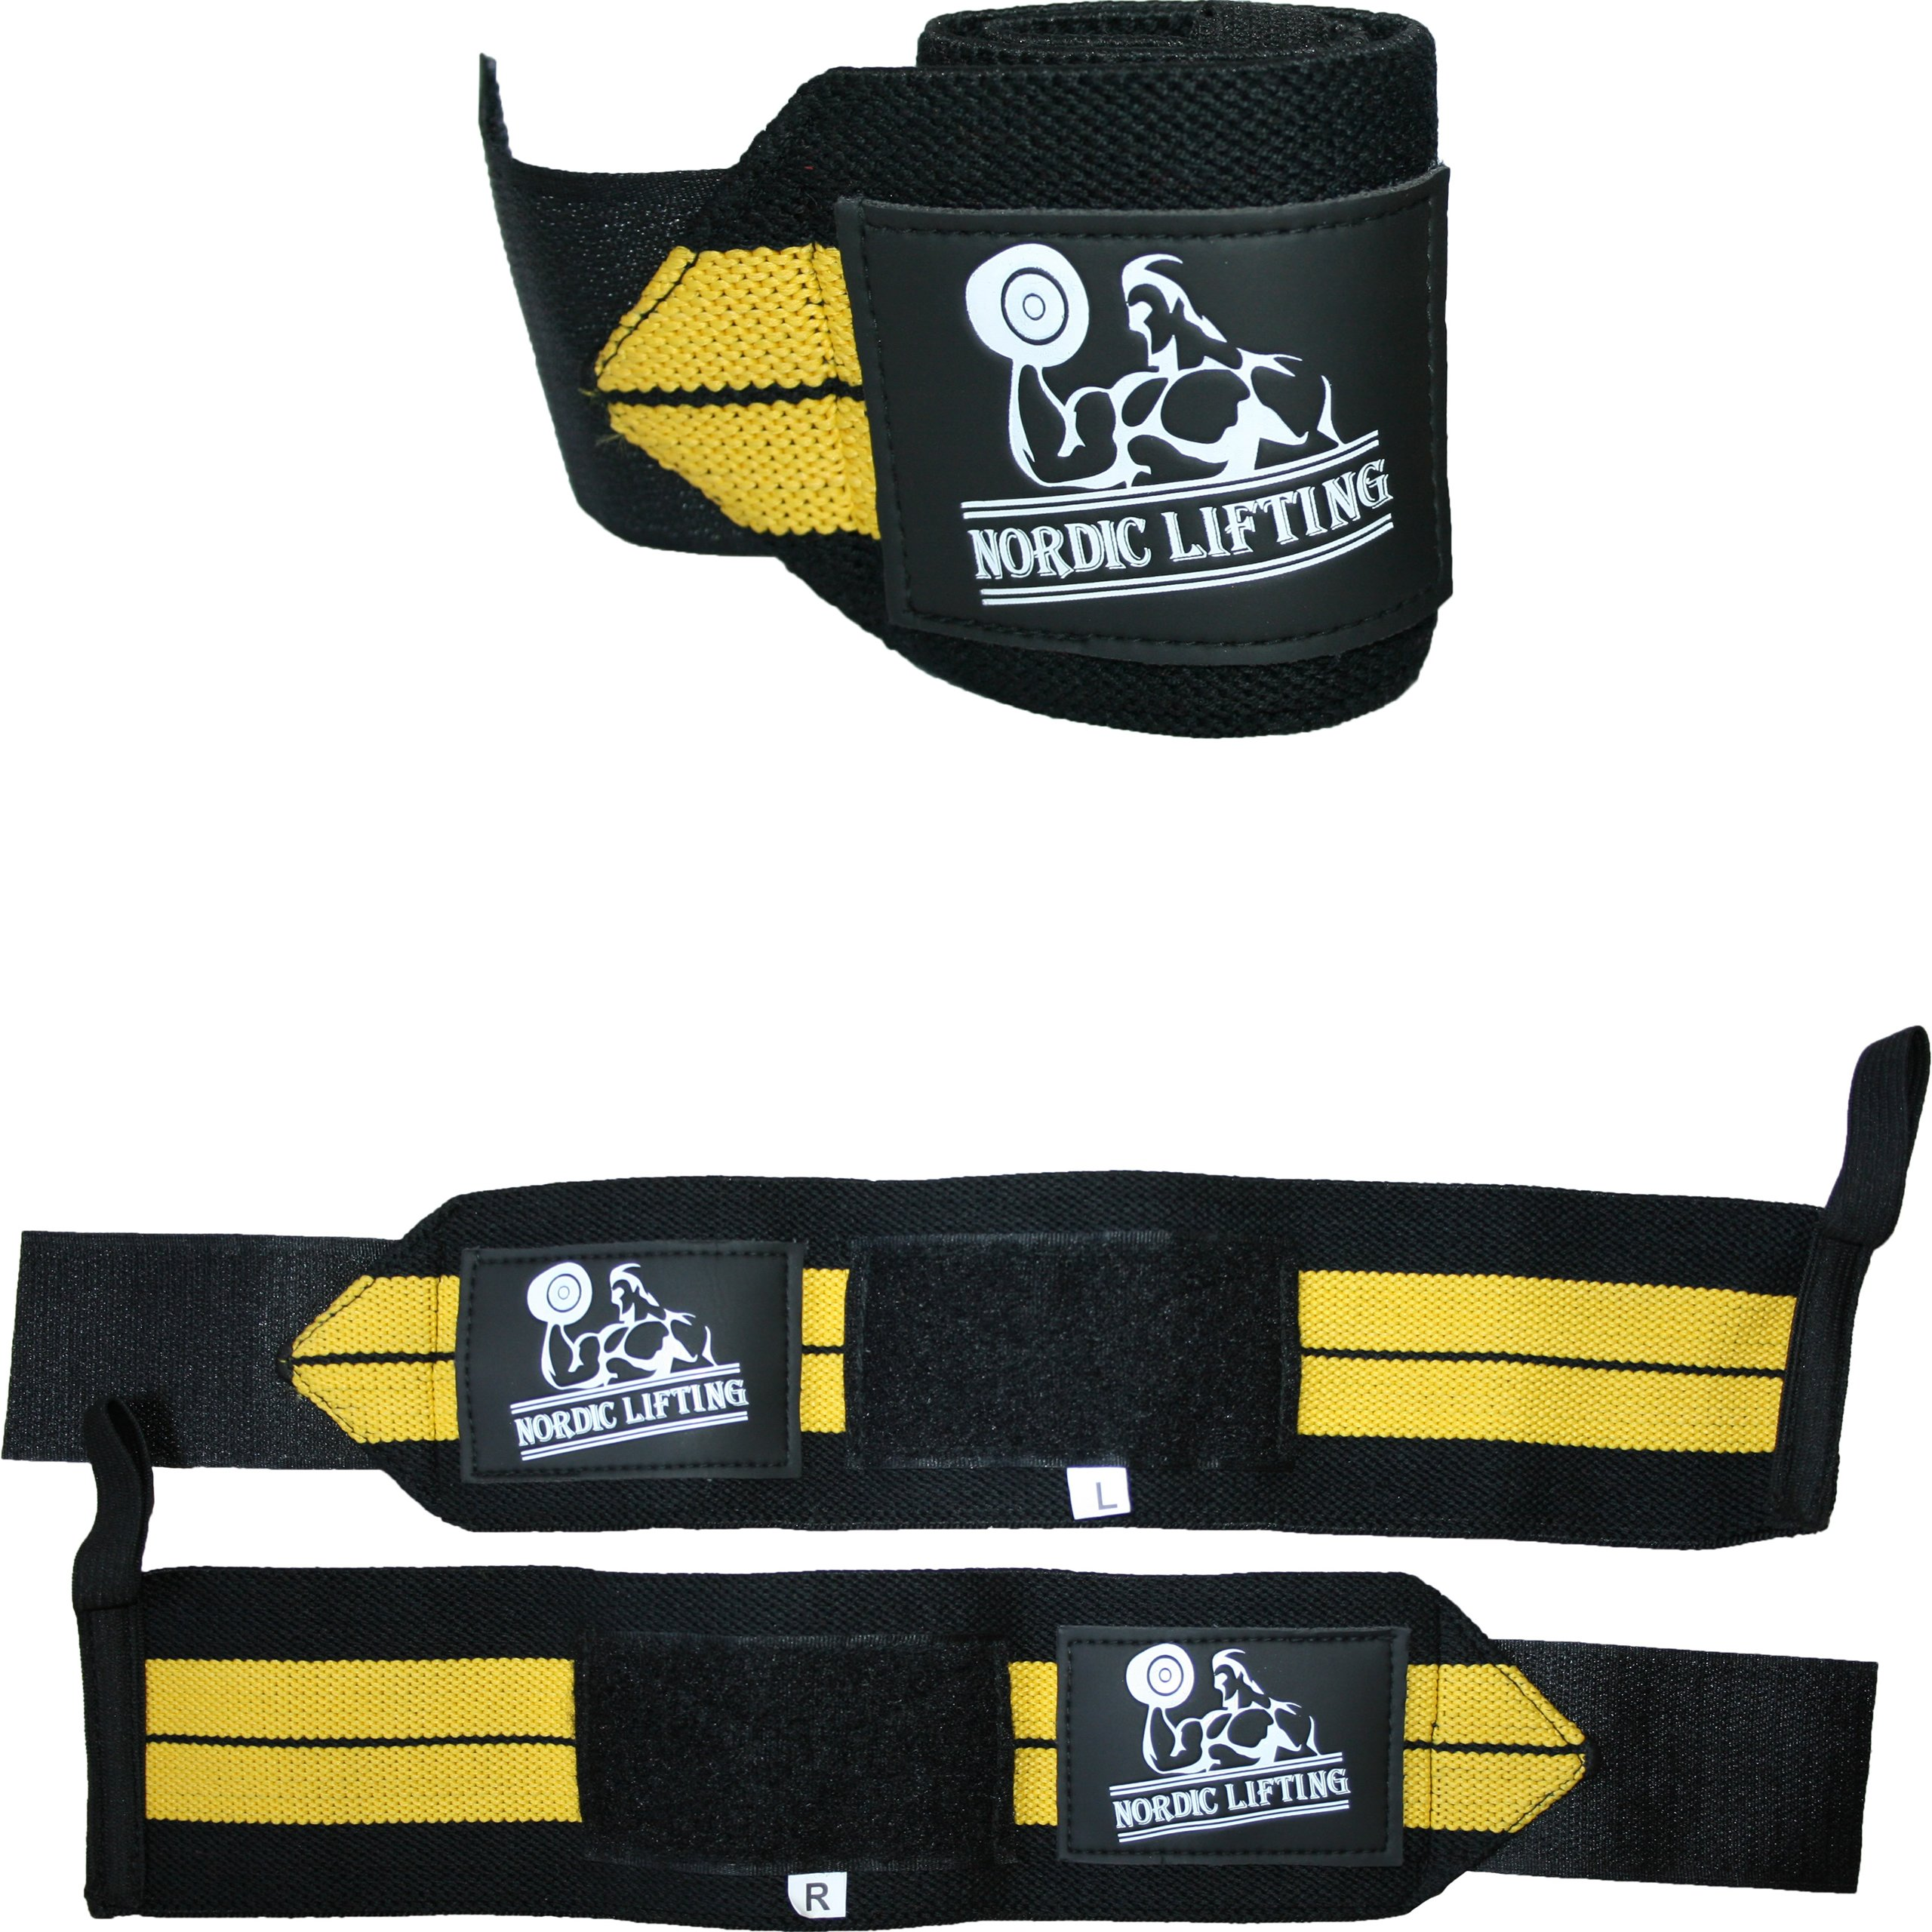 Wrist Wraps (1 Pair/2 Wraps) for Weightlifting/Cross Training/Powerlifting/Bodybuilding-Women & Men-Premium Quality Equipment & Accessories Avoid Injury During Weight Lifting-(Yellow)-1 Year Warranty